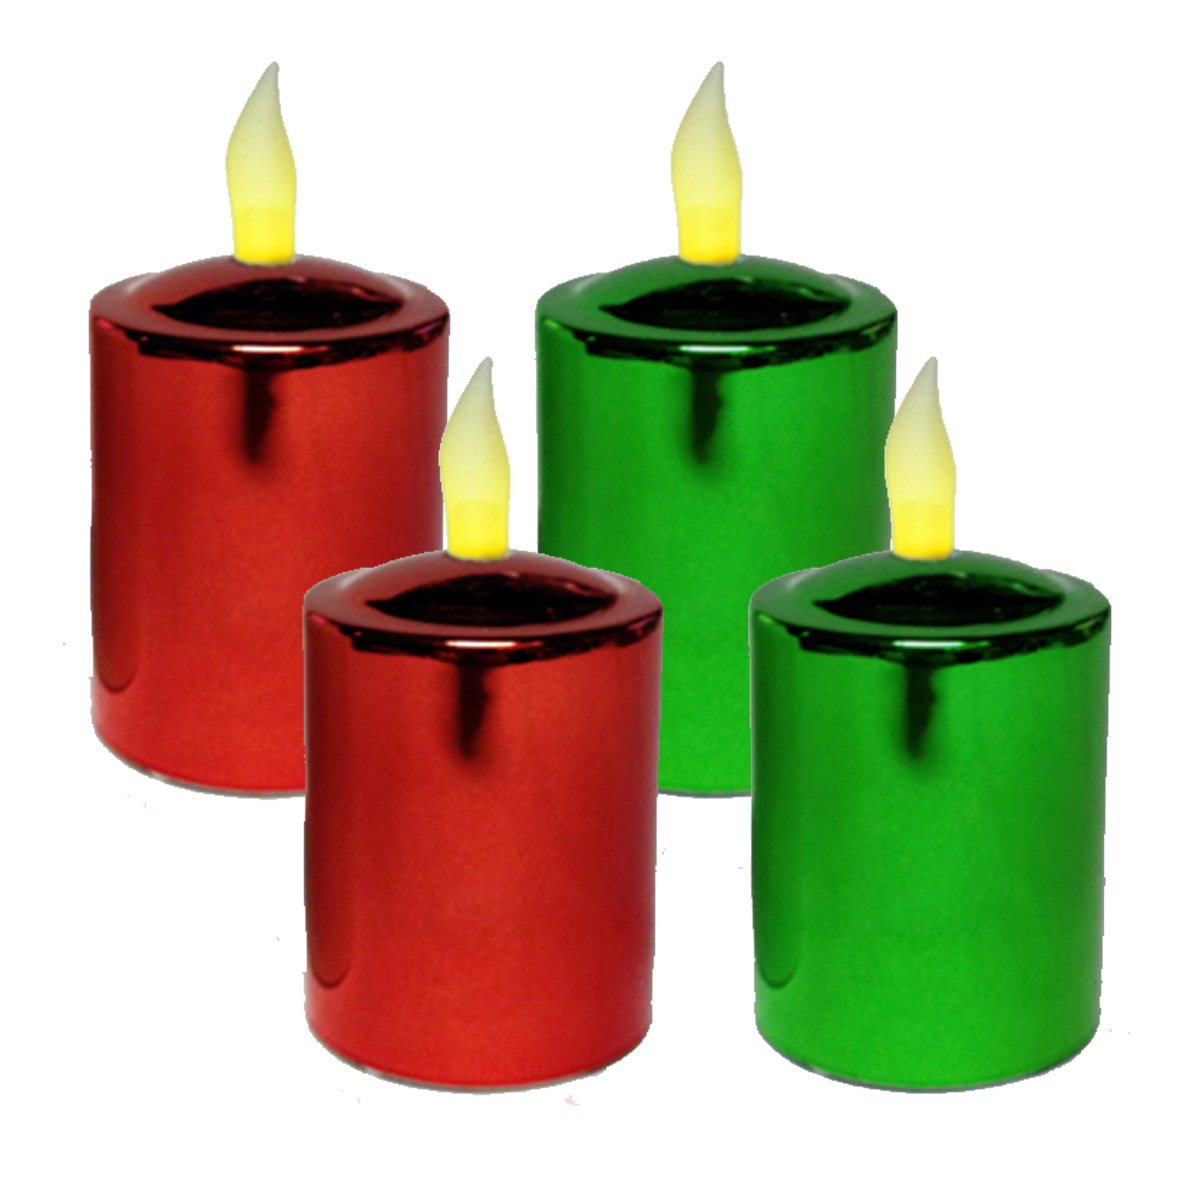 Mr. Light Metallic Votive Candles with Timers, Red/Green - Set of 4